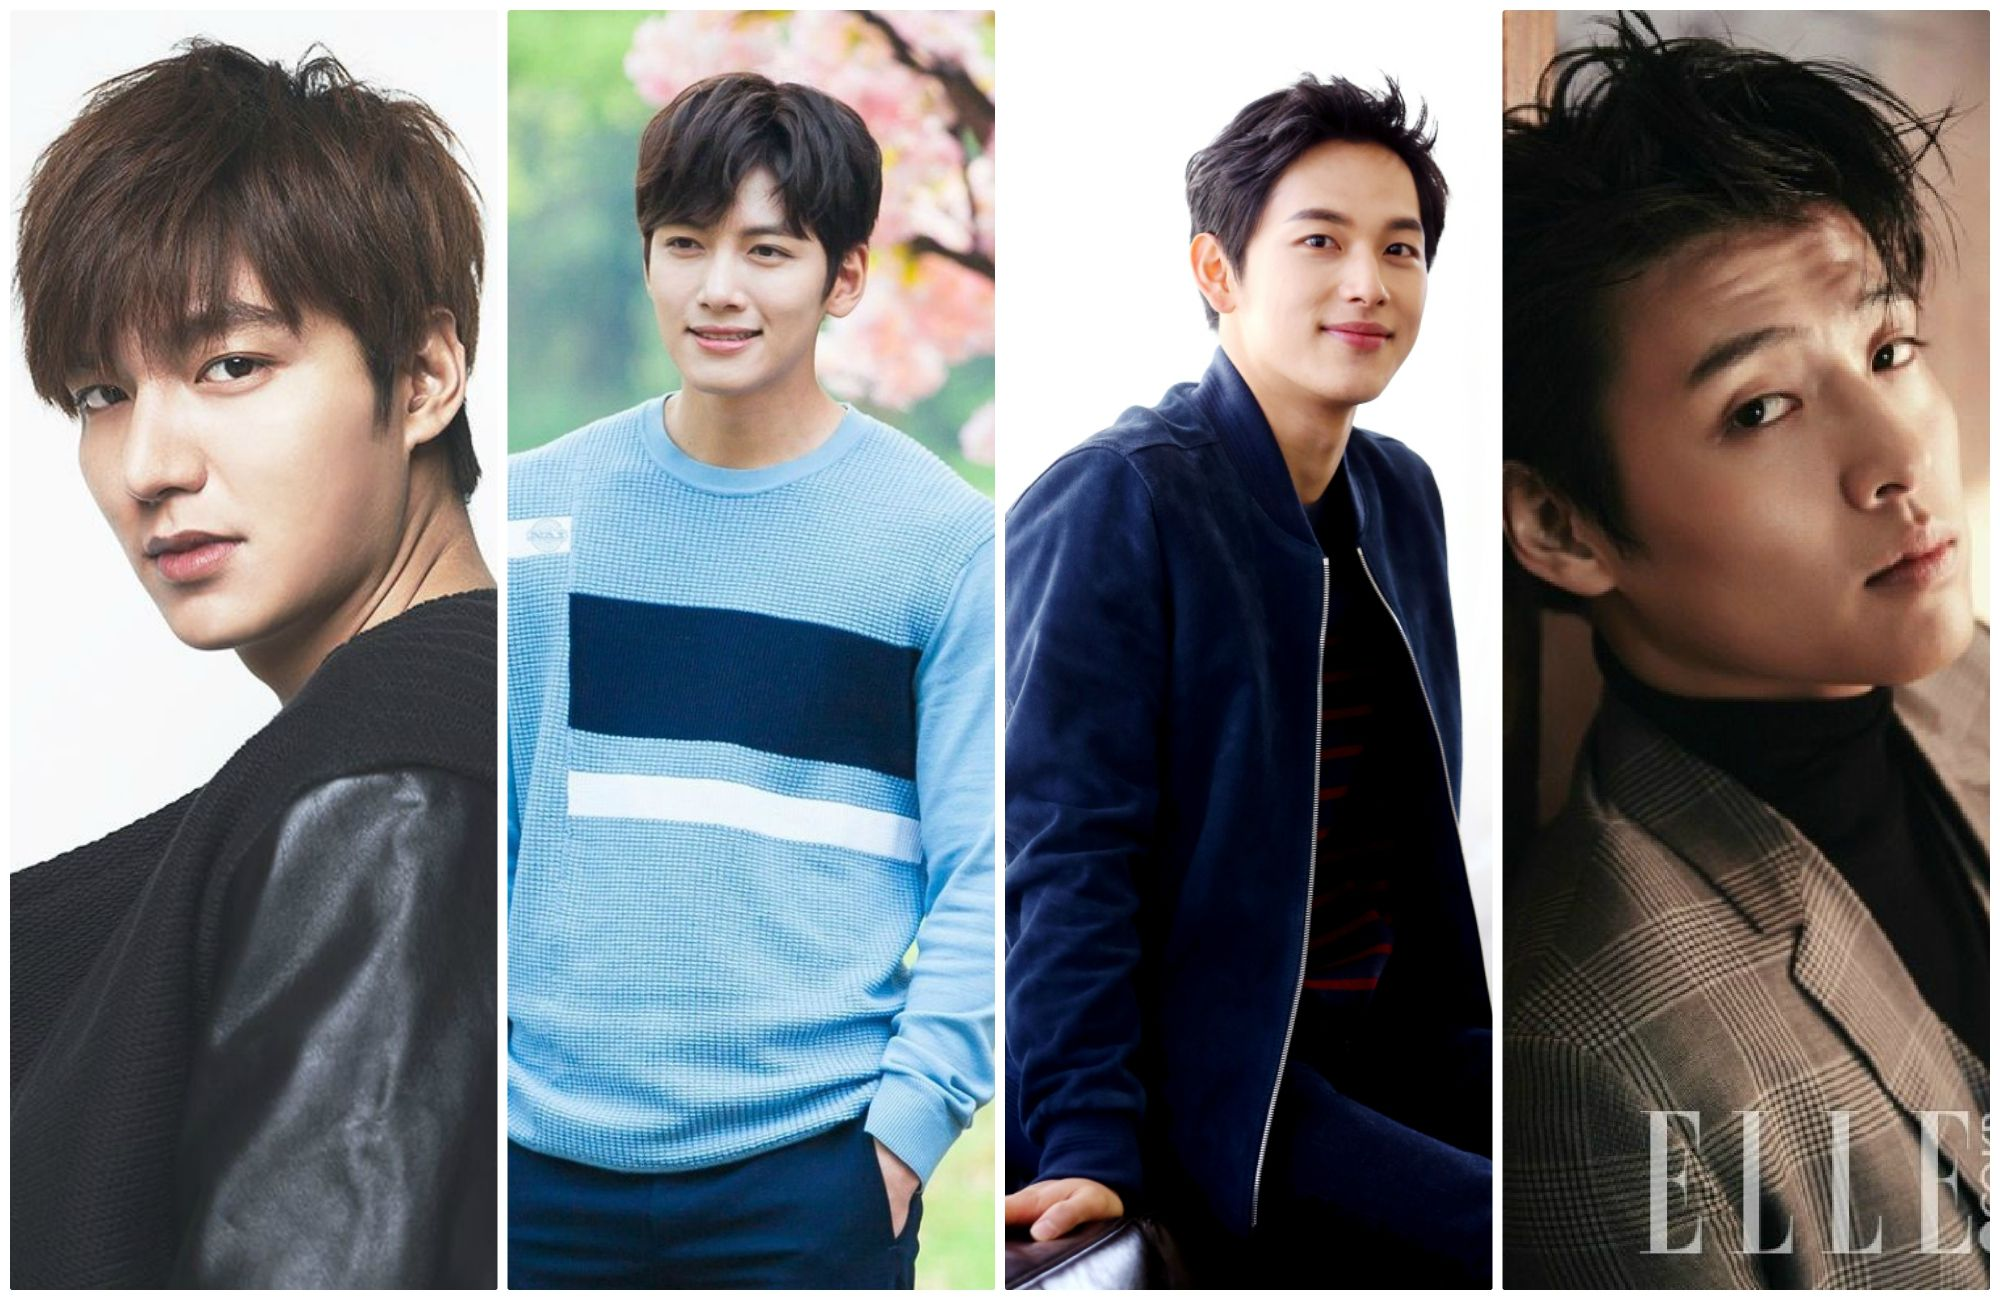 [K-Drama]: 4 projects after demobilization of the Korean actors, who do you look forward to the most?